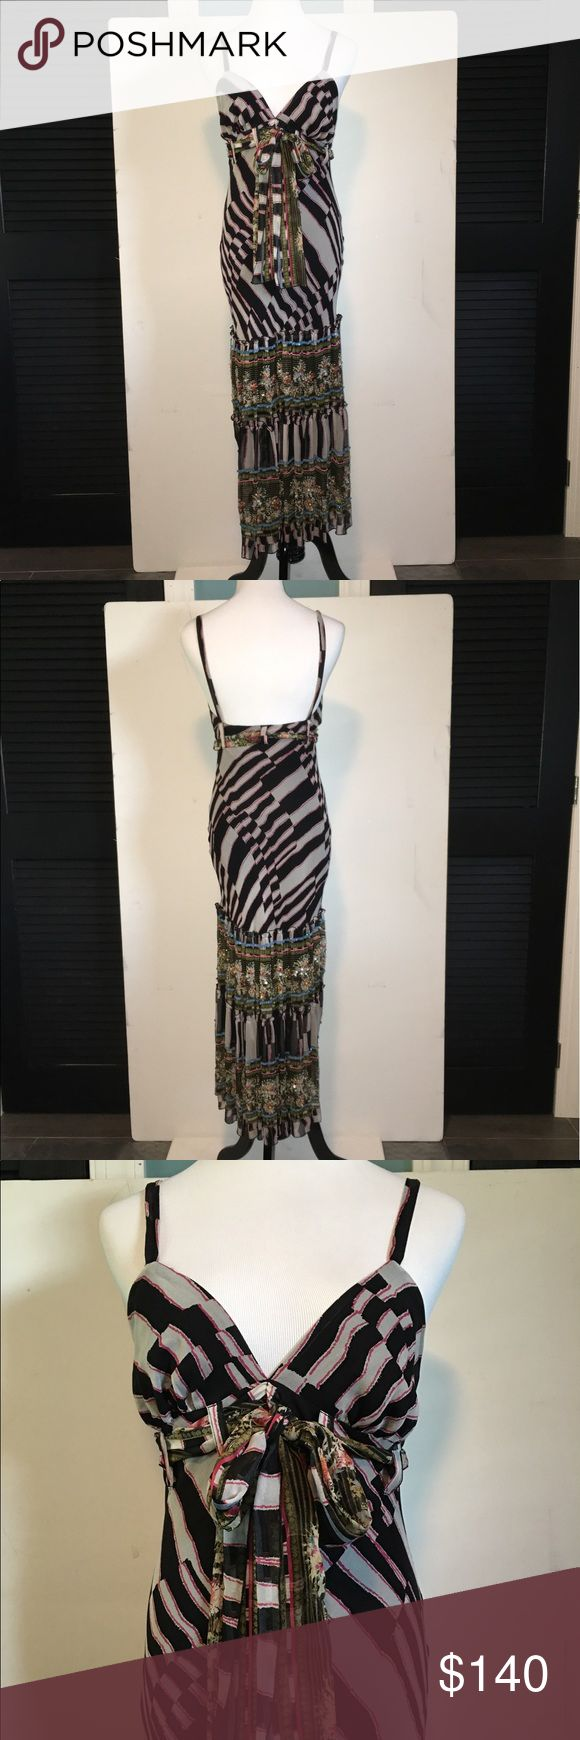 """Diane von Furstenberg Kingston Beaded Dress PLEASE NOTE-- this is a size 4, but runs small (fits more like a 2, which is why I labeled it as a 2 (XS). Armpit to armpit is approximately 13"""" across (un-stretched, laying flat on table). * Size 4 * Zebra with Tapis print. * This dress has gorgeous features!! Beaded detailing at the bottom of the dress, along with contrasting prints and a tie belt that sits on an empire-inspired waist. Stunning with spaghetti straps-- can be worn as is, or with a…"""